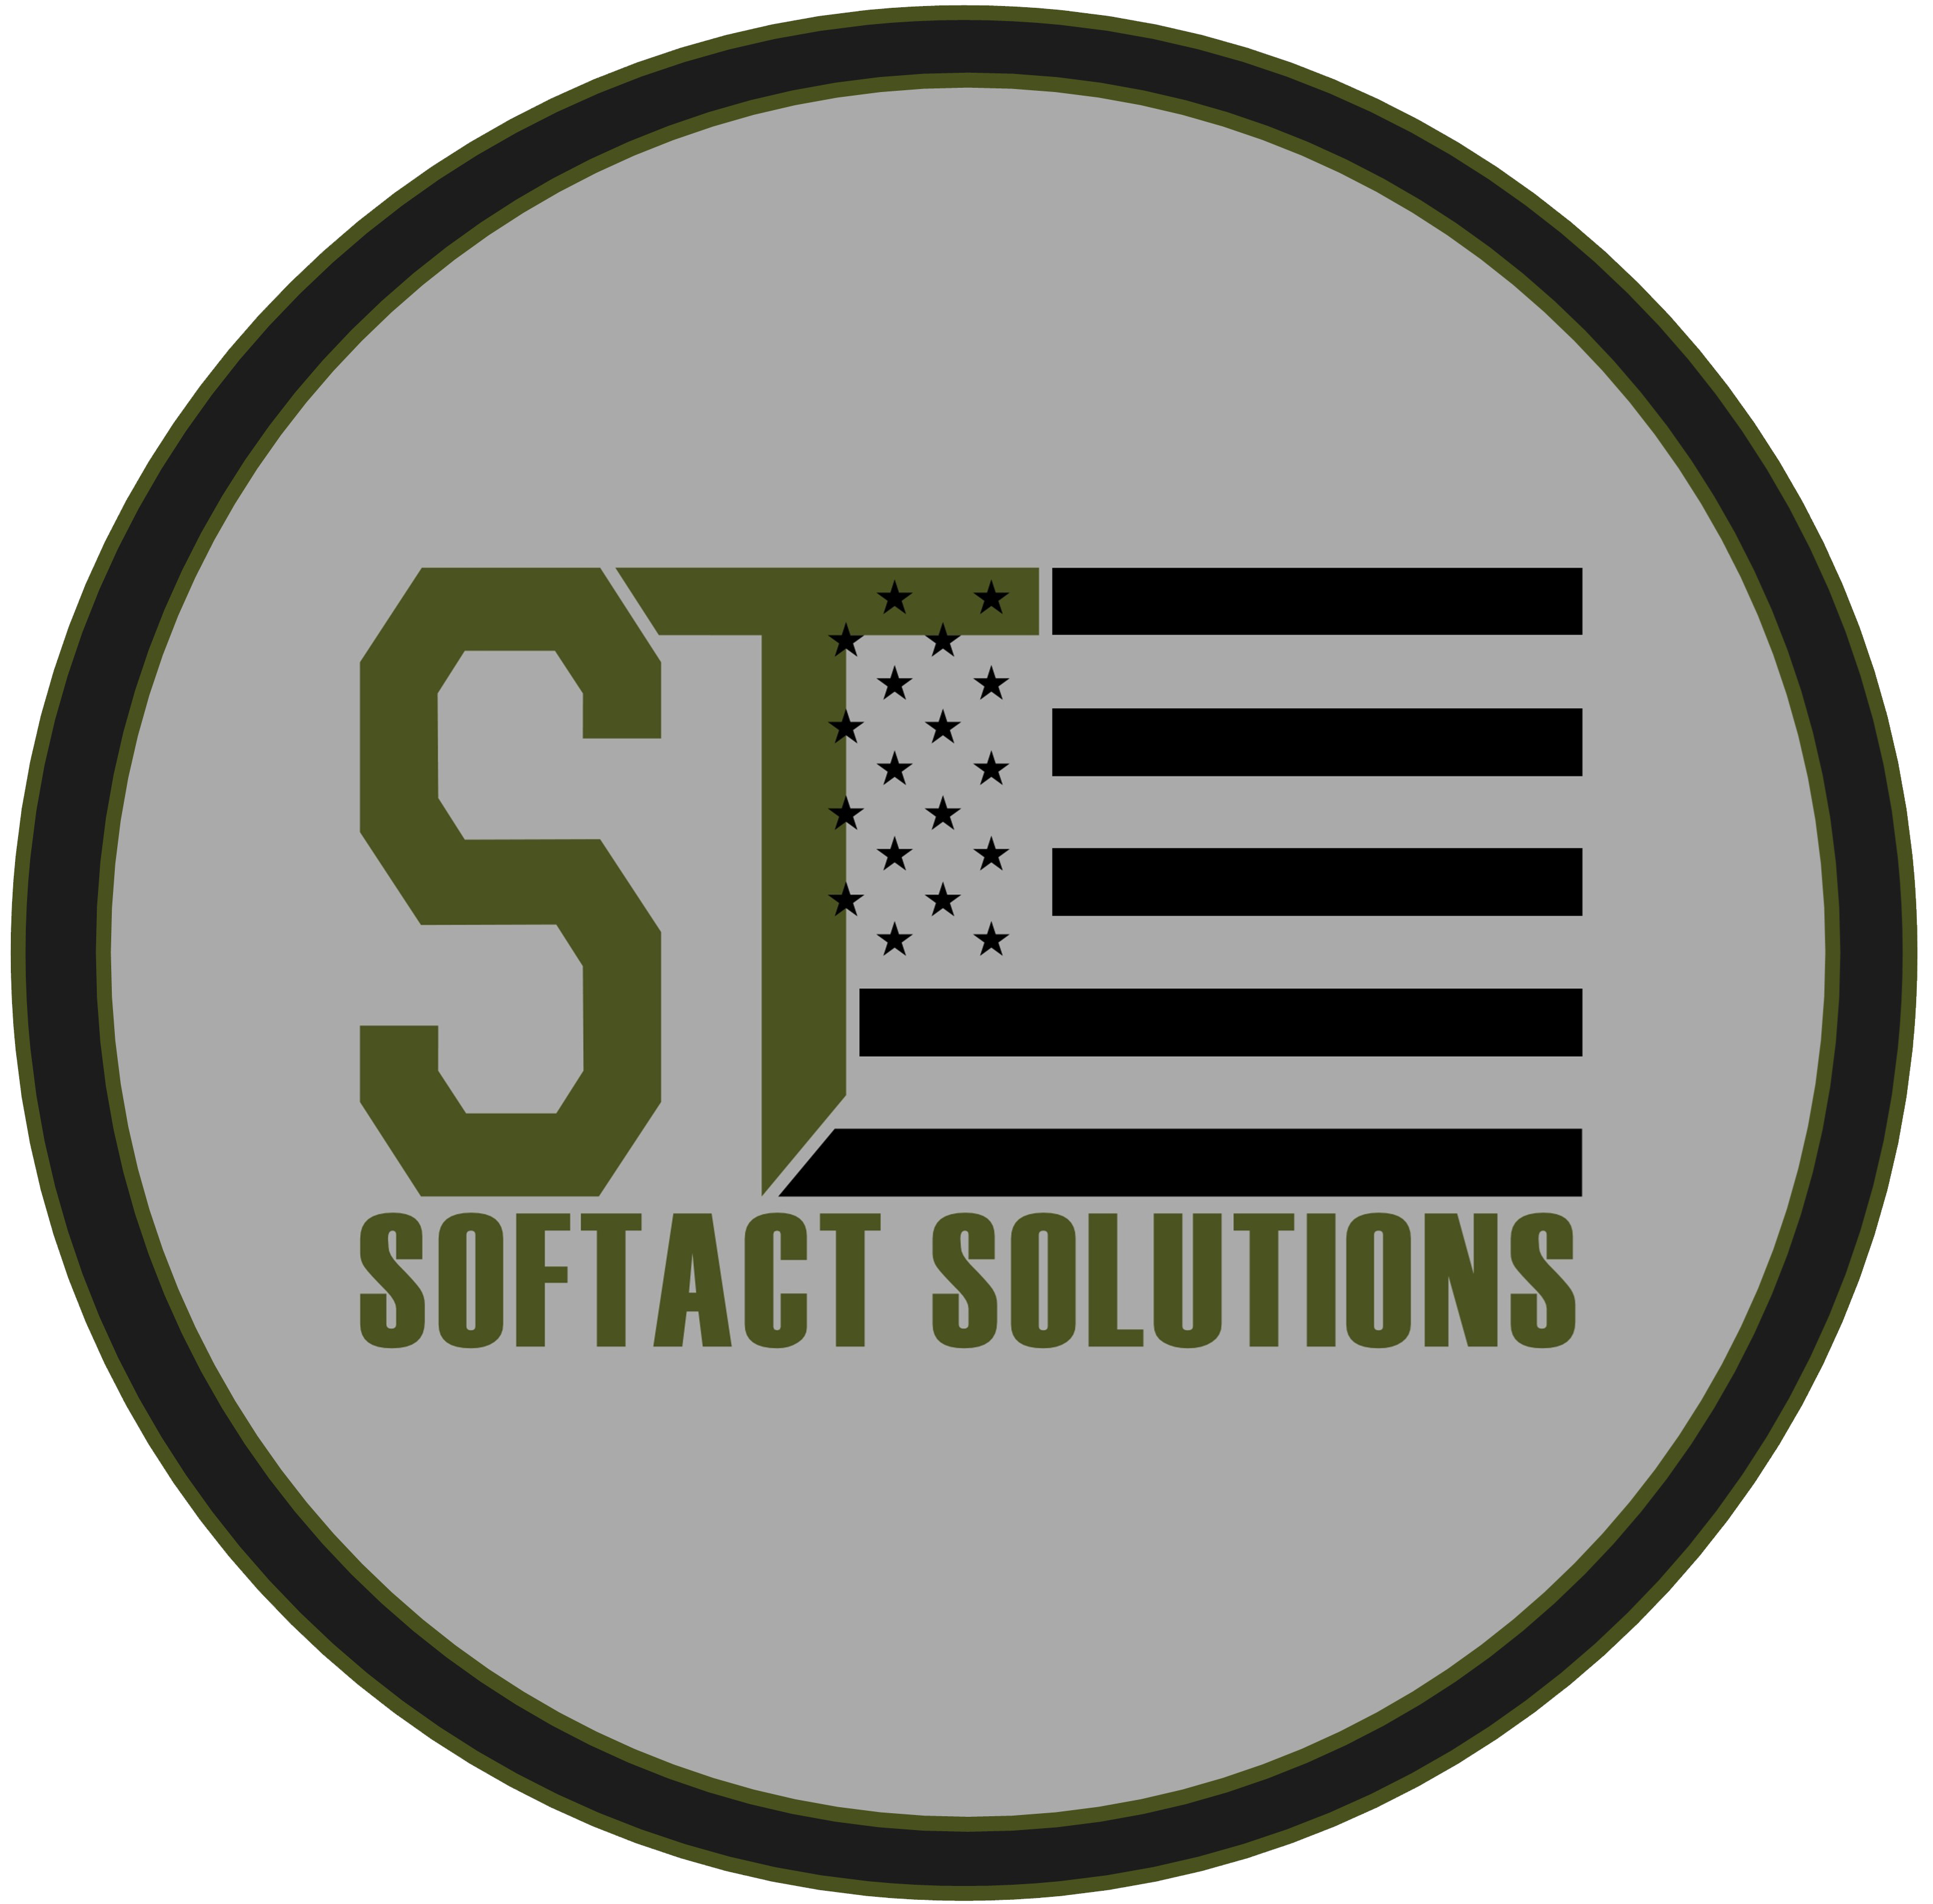 SOFtact Solutions